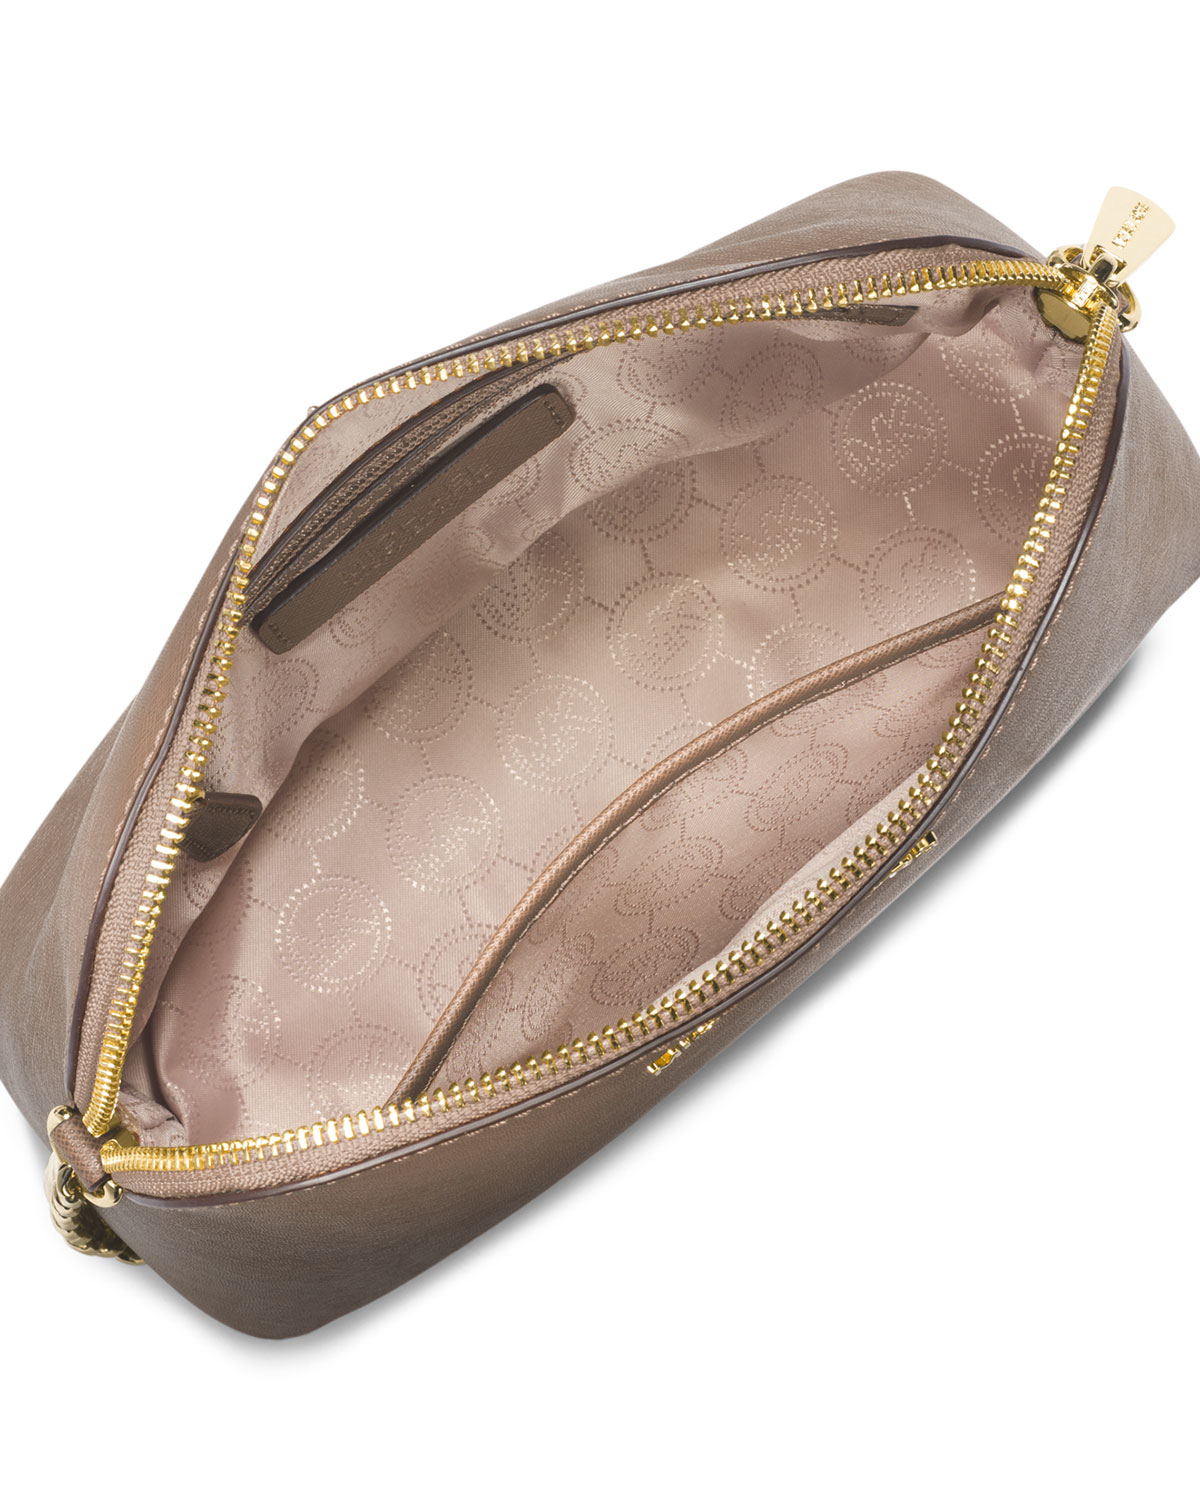 43ade4164558 Lyst - MICHAEL Michael Kors Cindy Large Dome Crossbody Bag in Natural